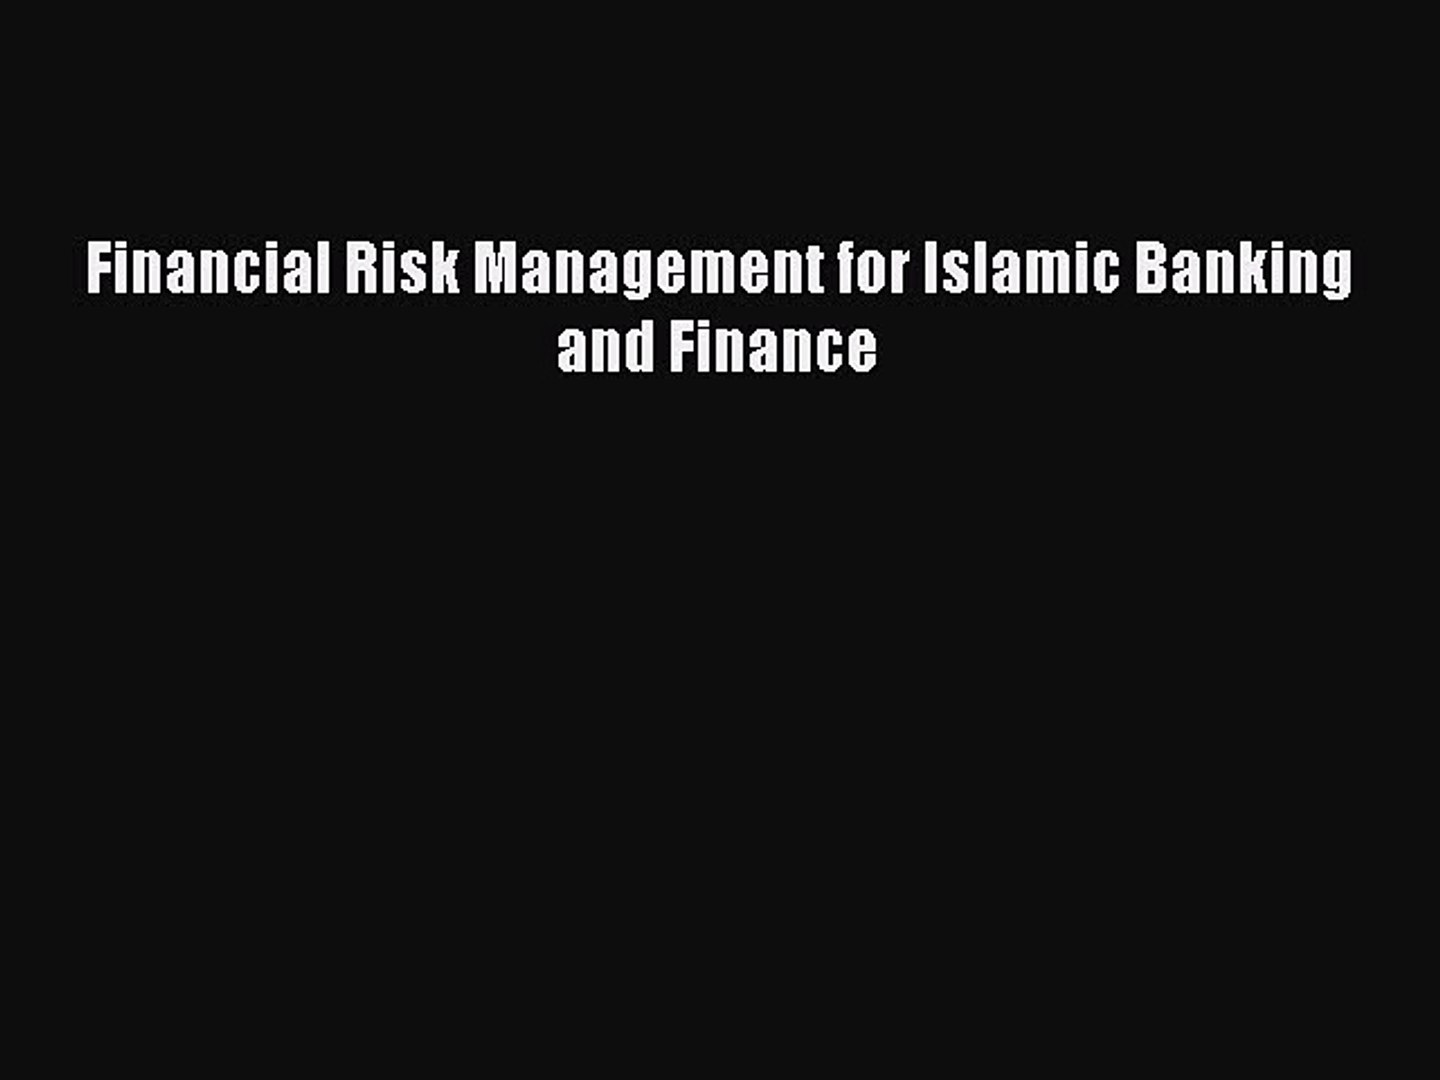 [PDF] Financial Risk Management for Islamic Banking and Finance [Download] Online